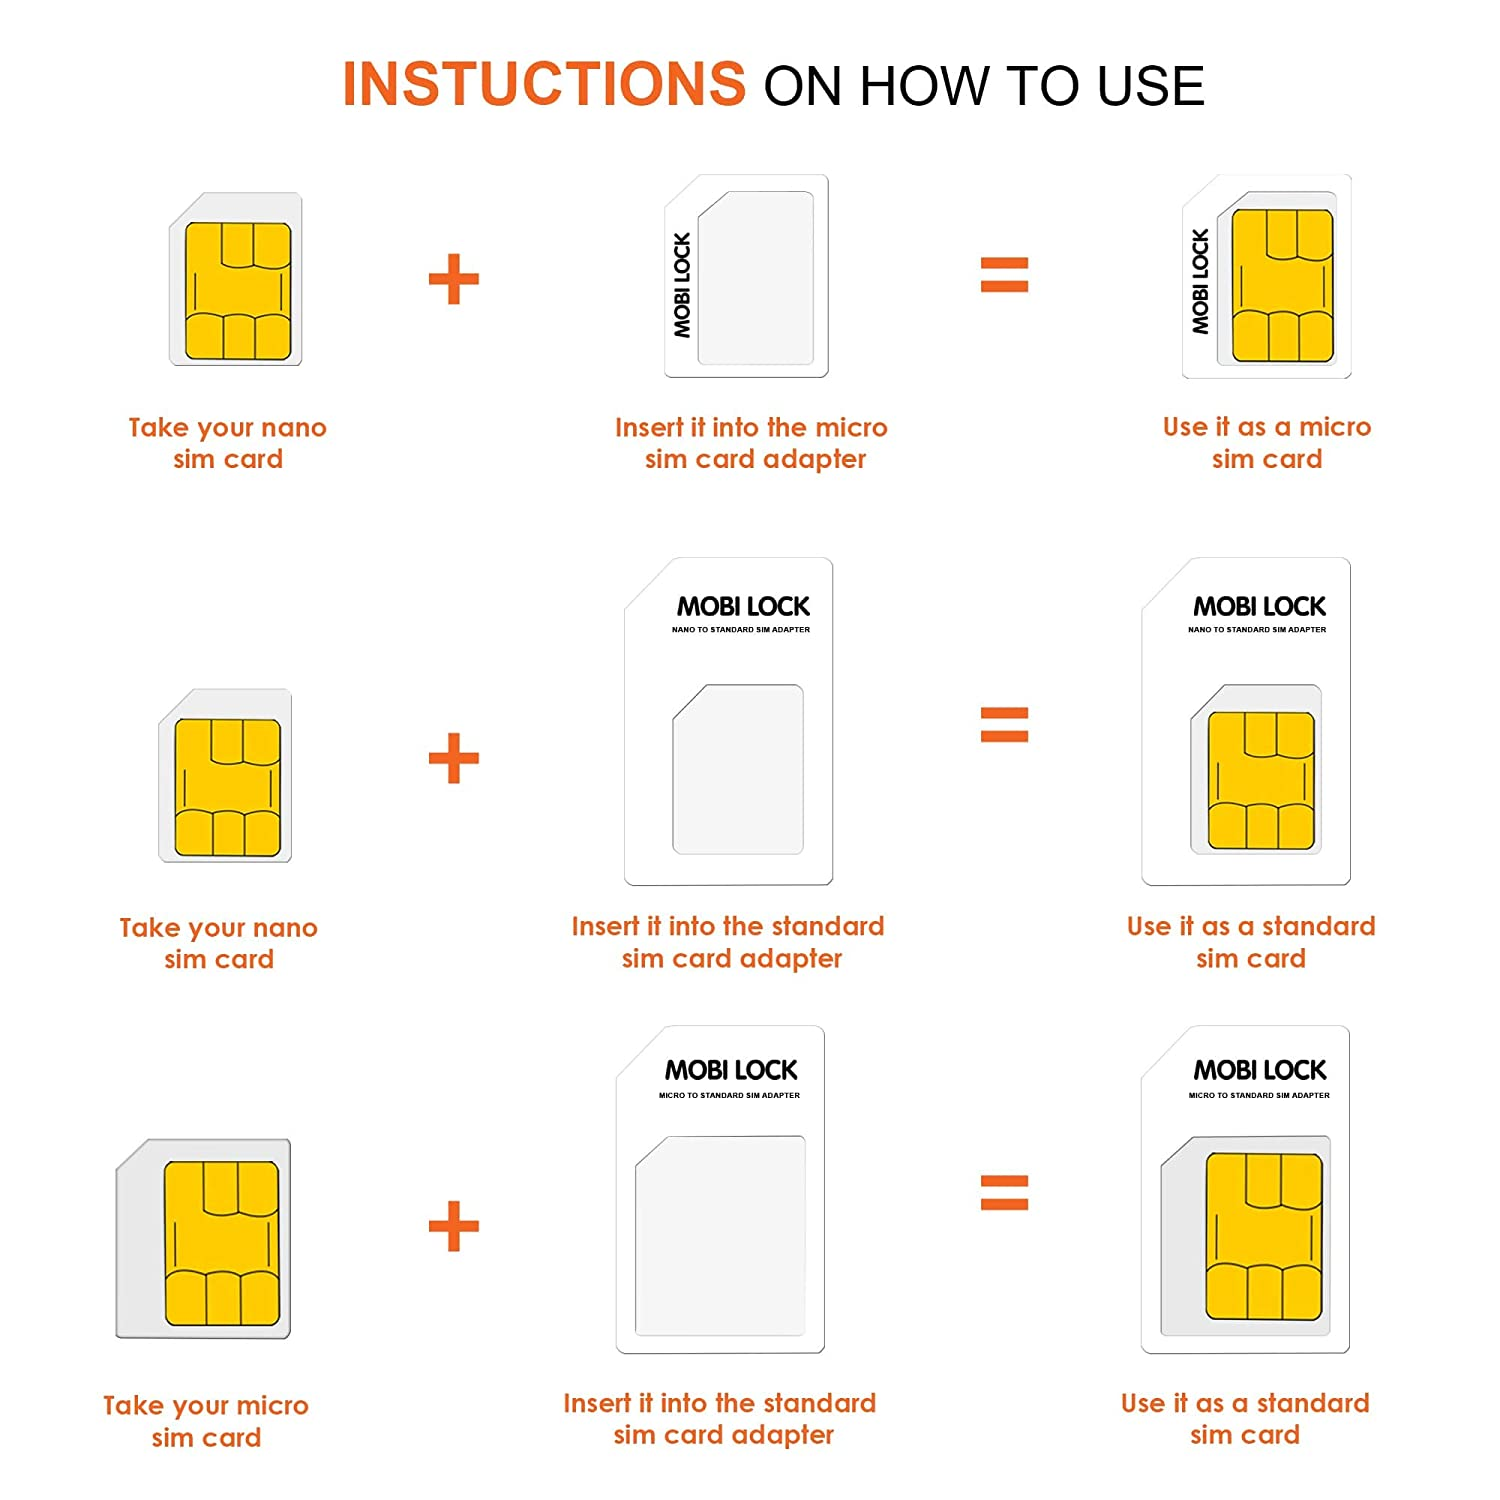 Carte Nano Sim Orange.6 In 1 Sim Card Adapter Box Kit Micro Nano And Standard Sim With Nail File And Storage Box For Iphone X 8 7 All Iphone Series Samsung Htc And